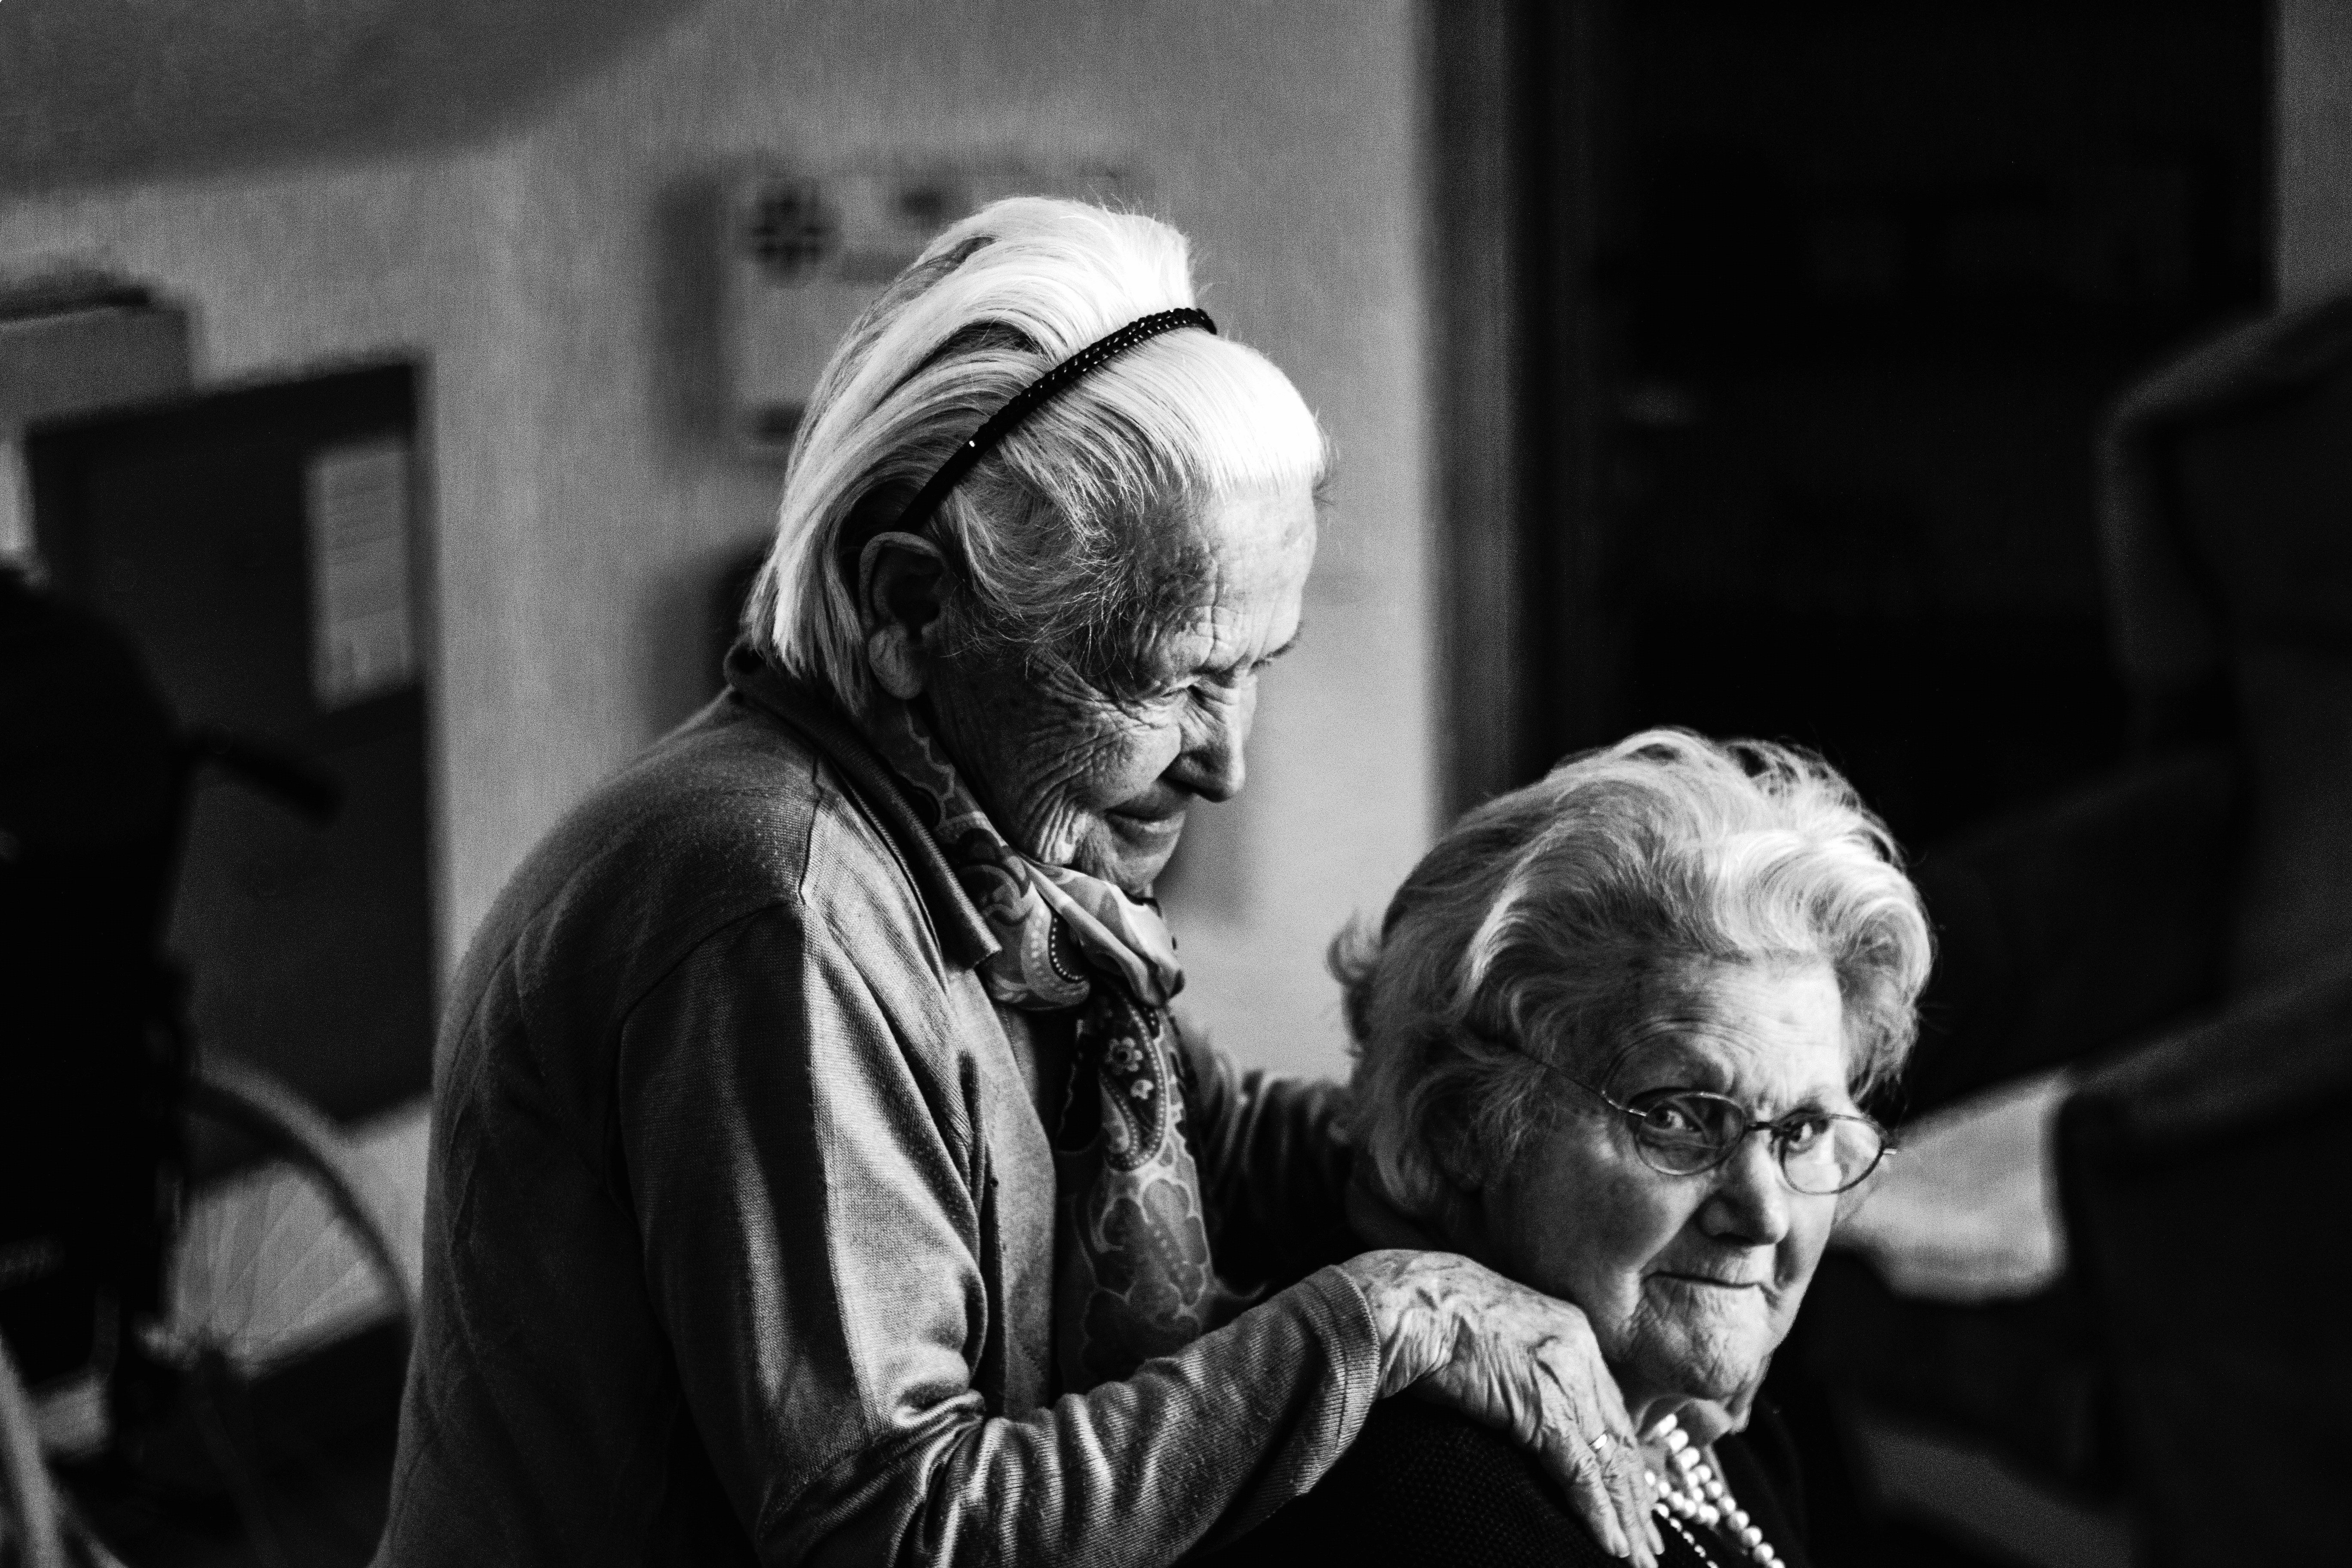 The self is not entirely lost in dementia,  argues new review